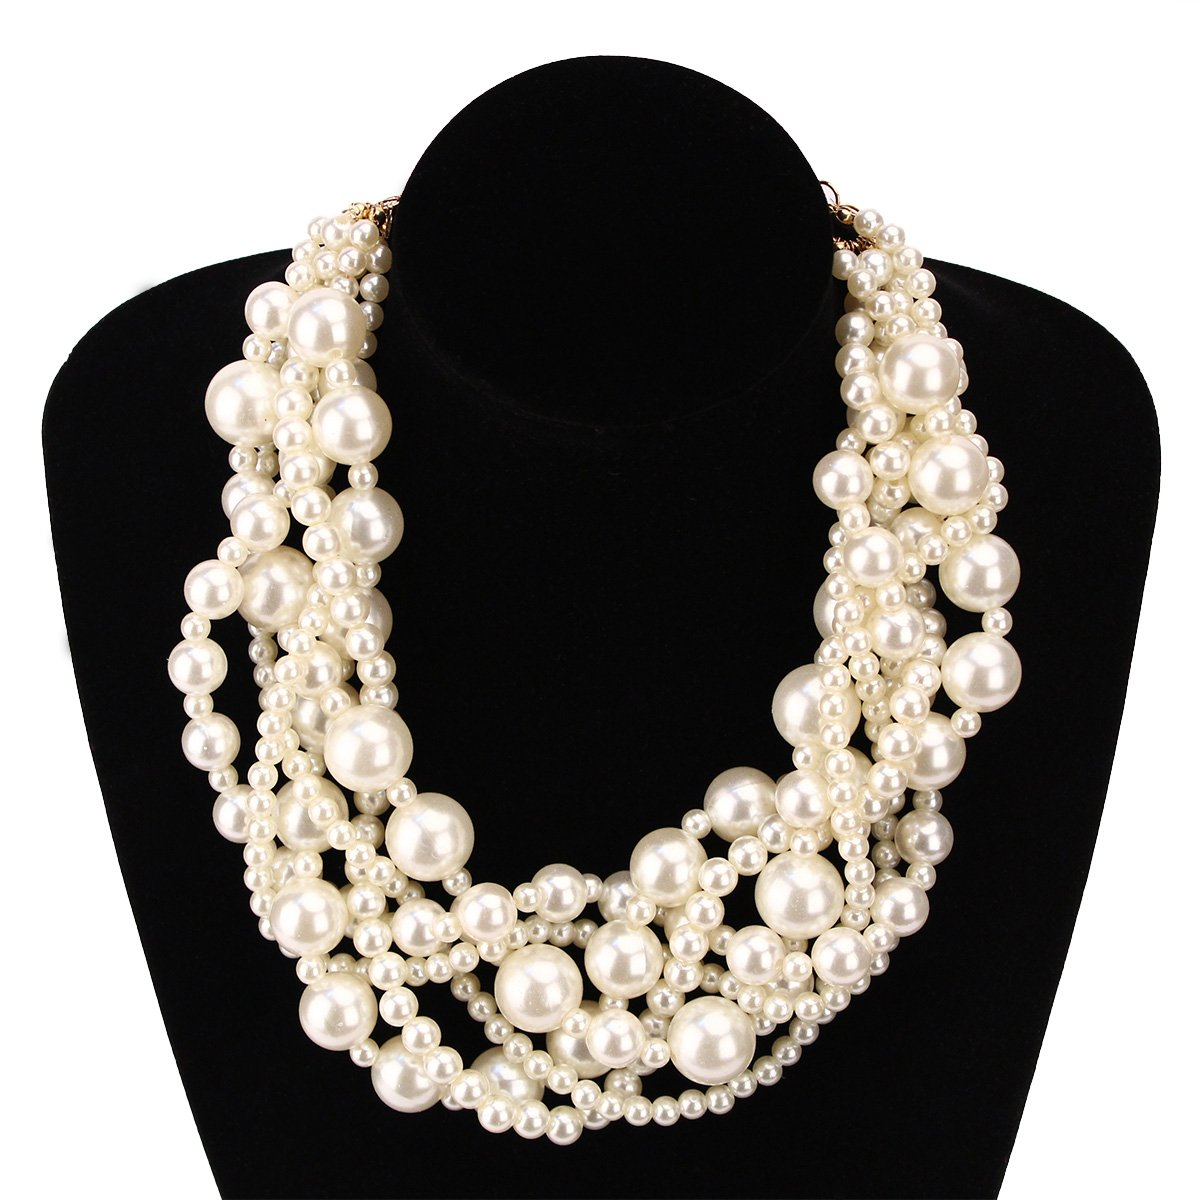 MeliMe Womens Imitation Pearl Twisty Chunky Bib Necklace Chokers for Wedding Party Melime Top AE82-AE83